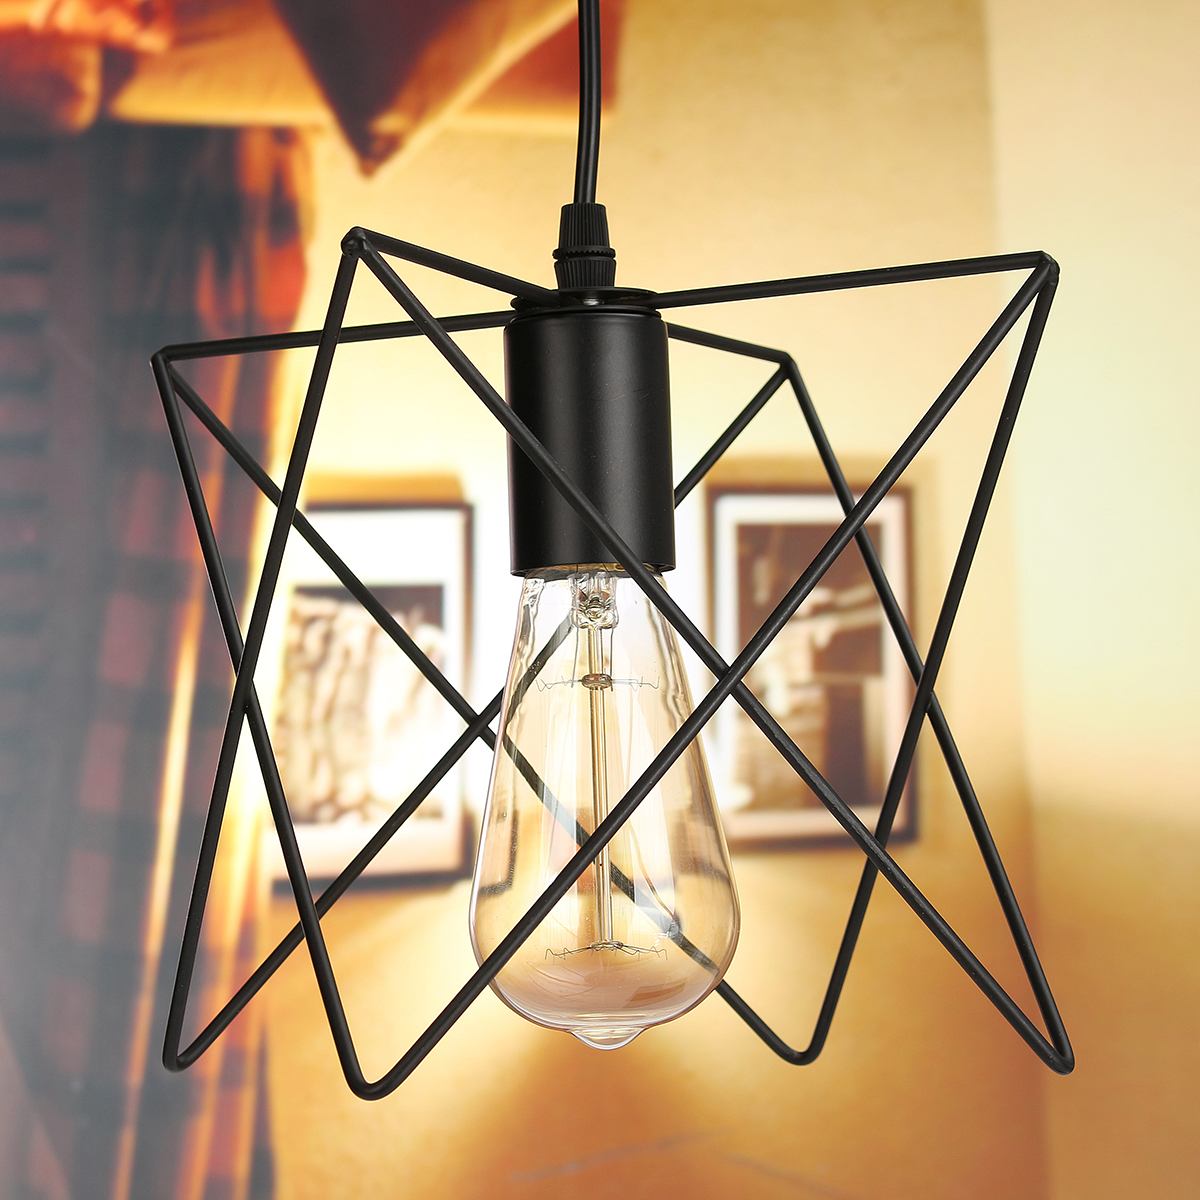 3 Bulb Ceiling Light: 3 In 1 Metal Vintage Ceiling Light Pendant Lamp Cage